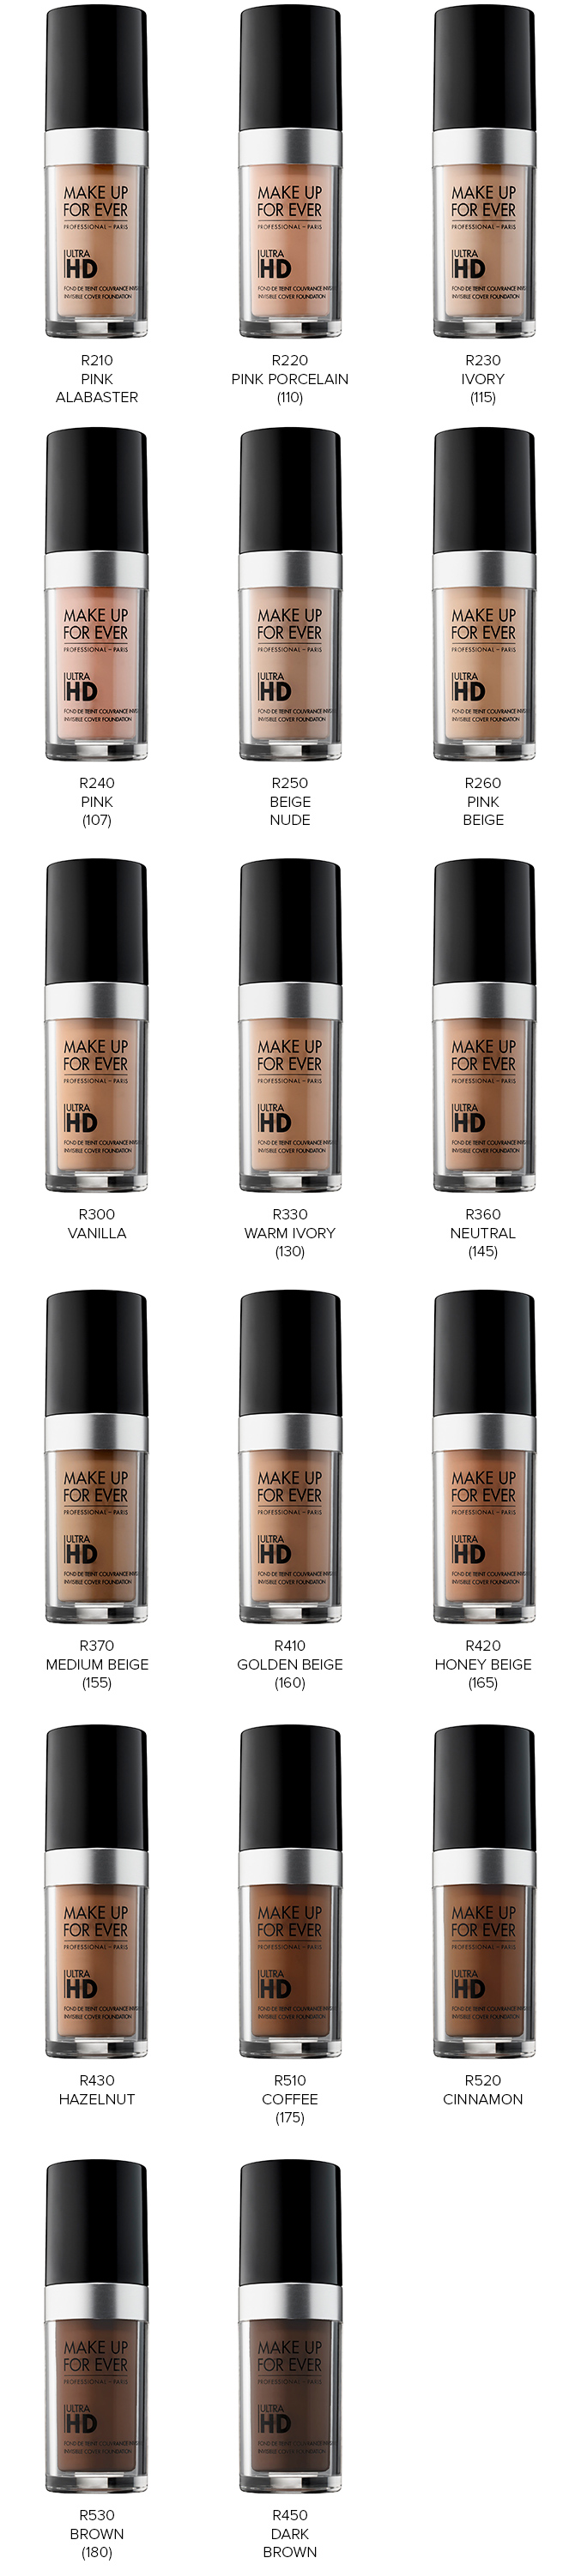 make up for ever ultra hd foundation amp stick foundation